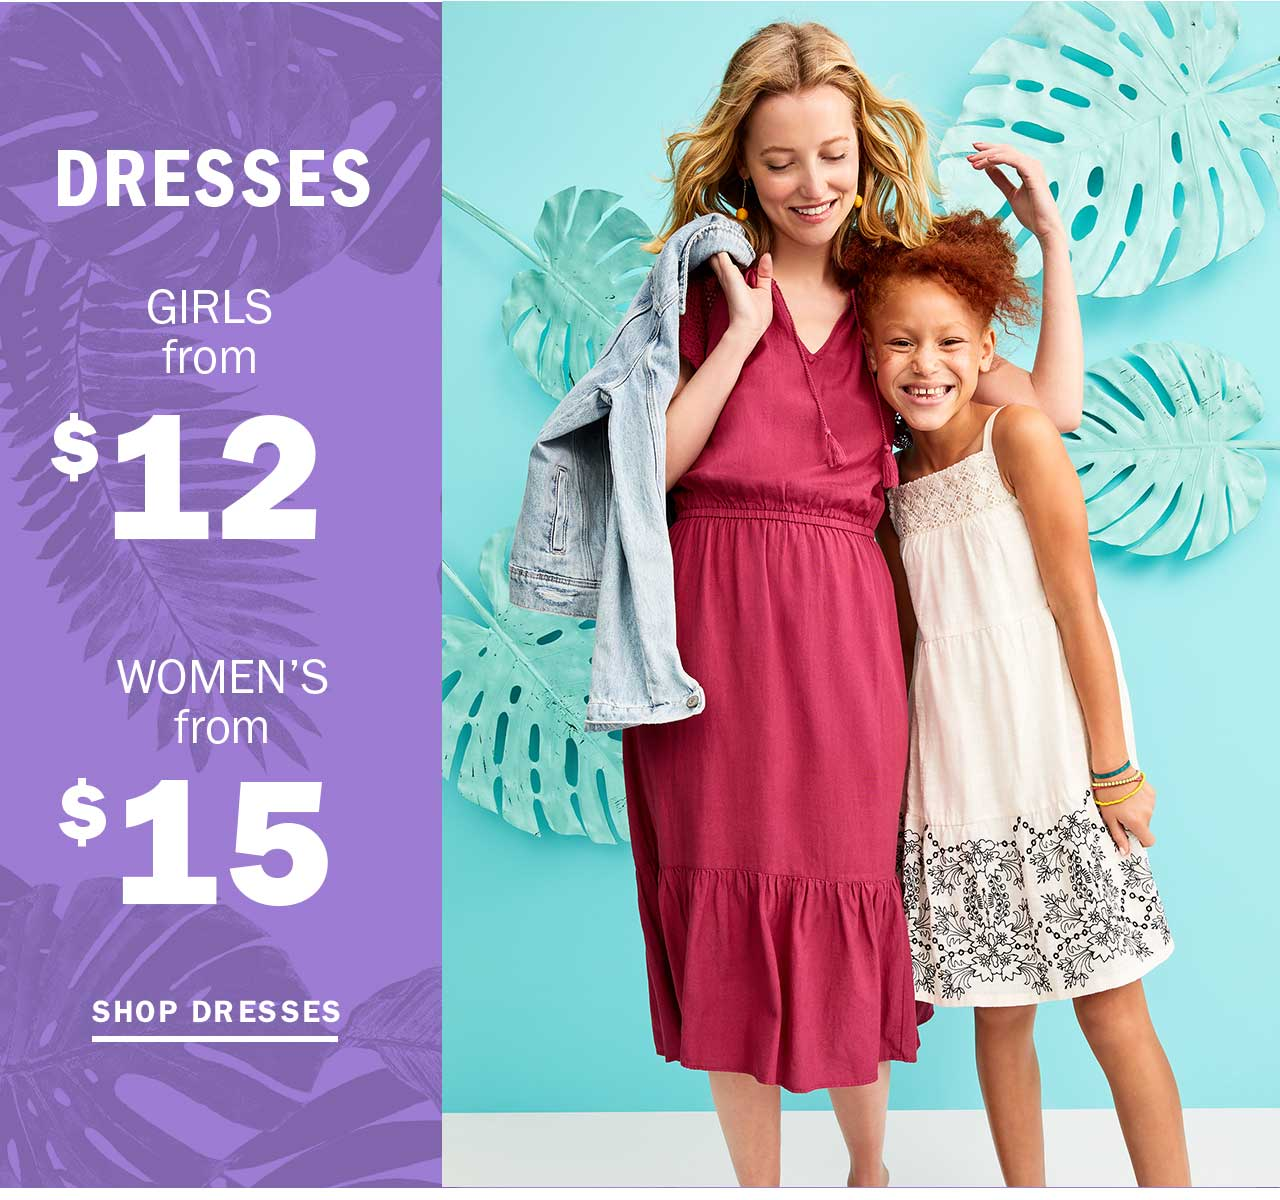 DRESSES GIRLS from $12 | WOMEN'S from $15 | SHOP DRESSES